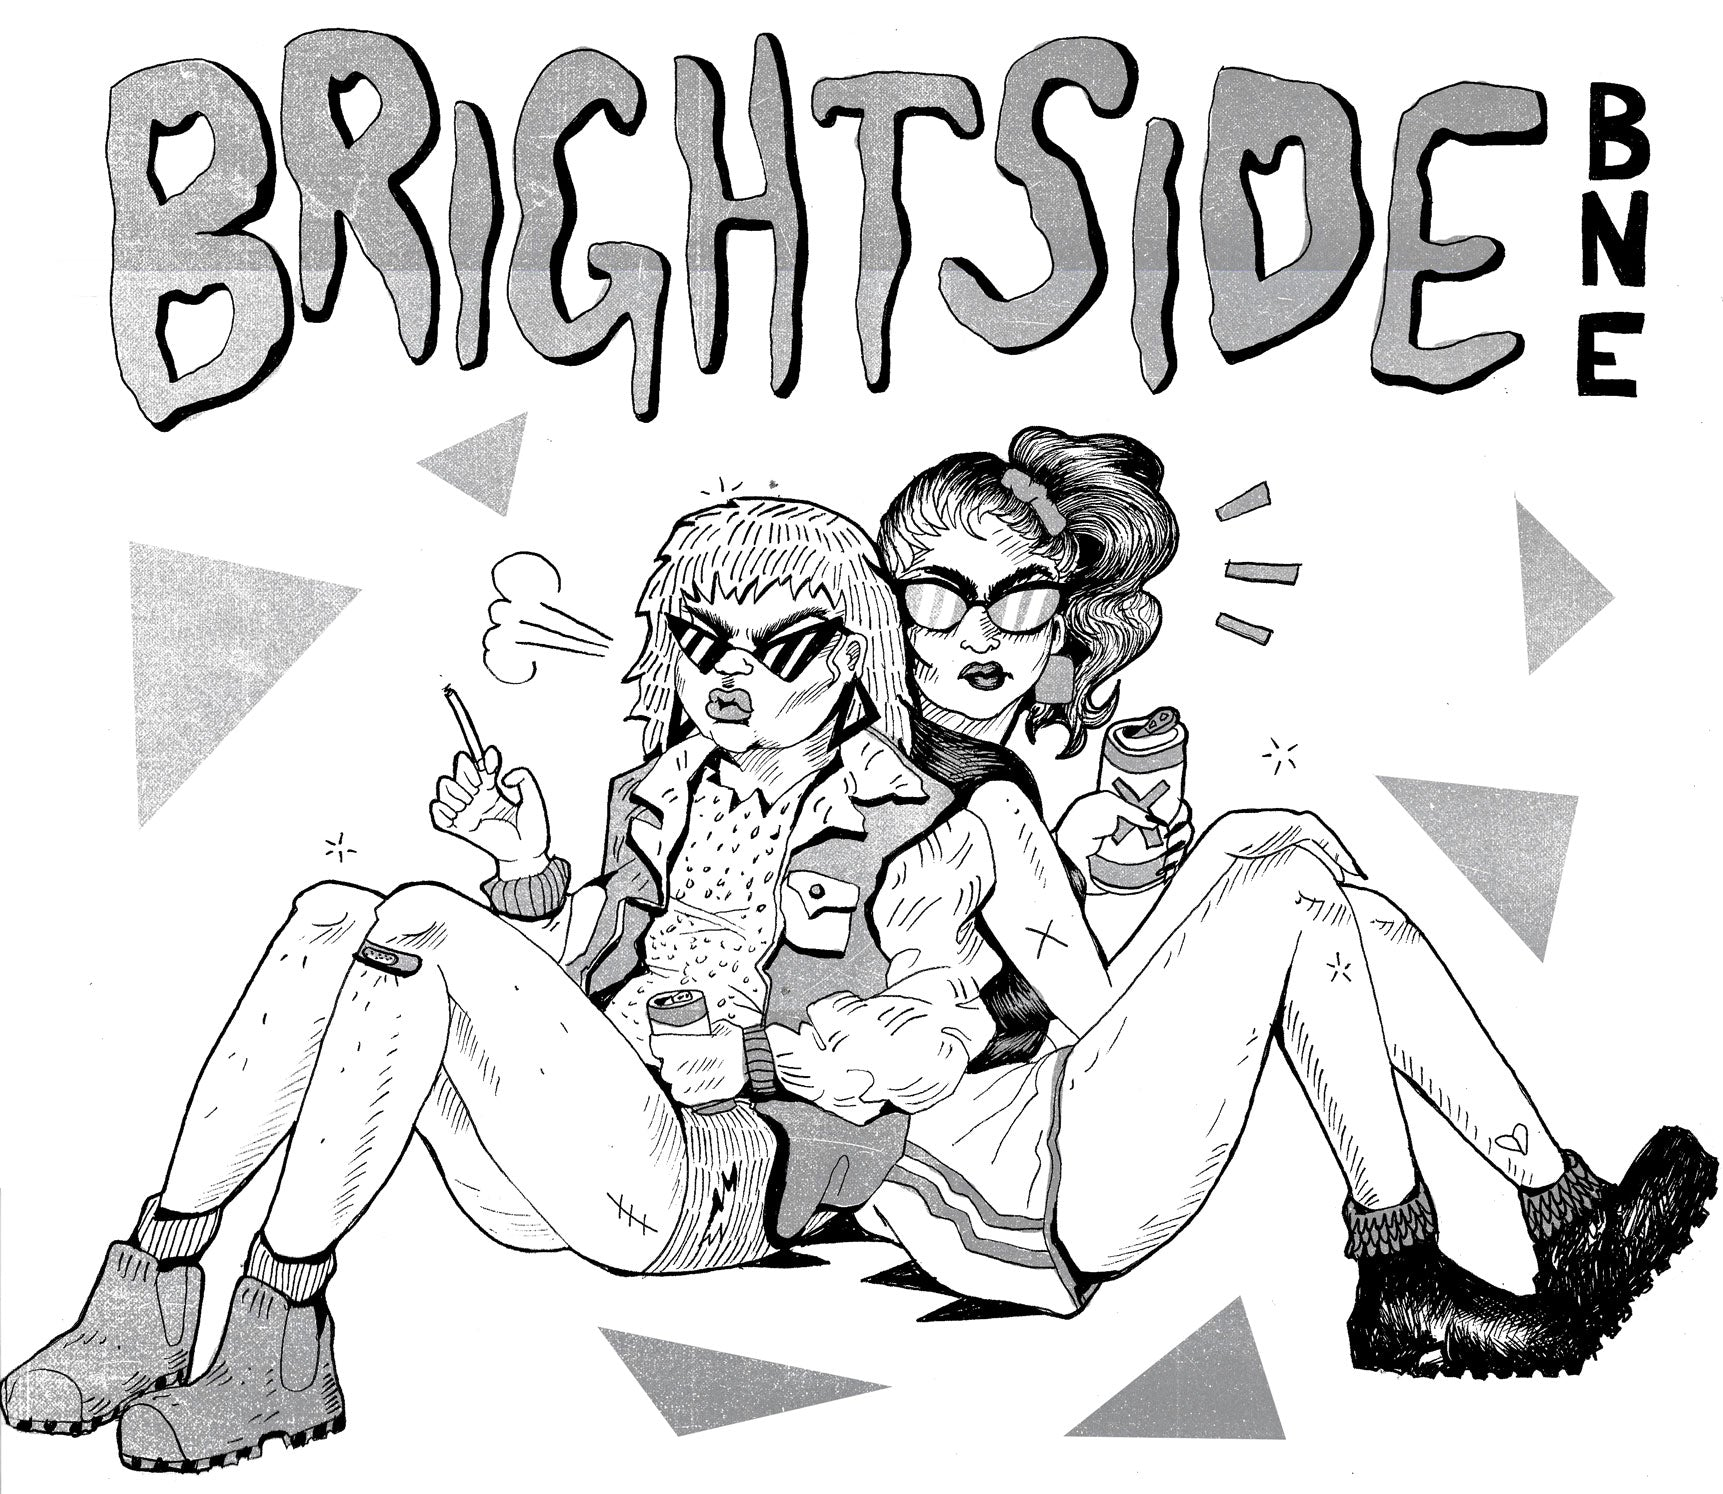 The Brightside, T-Shirt 2017